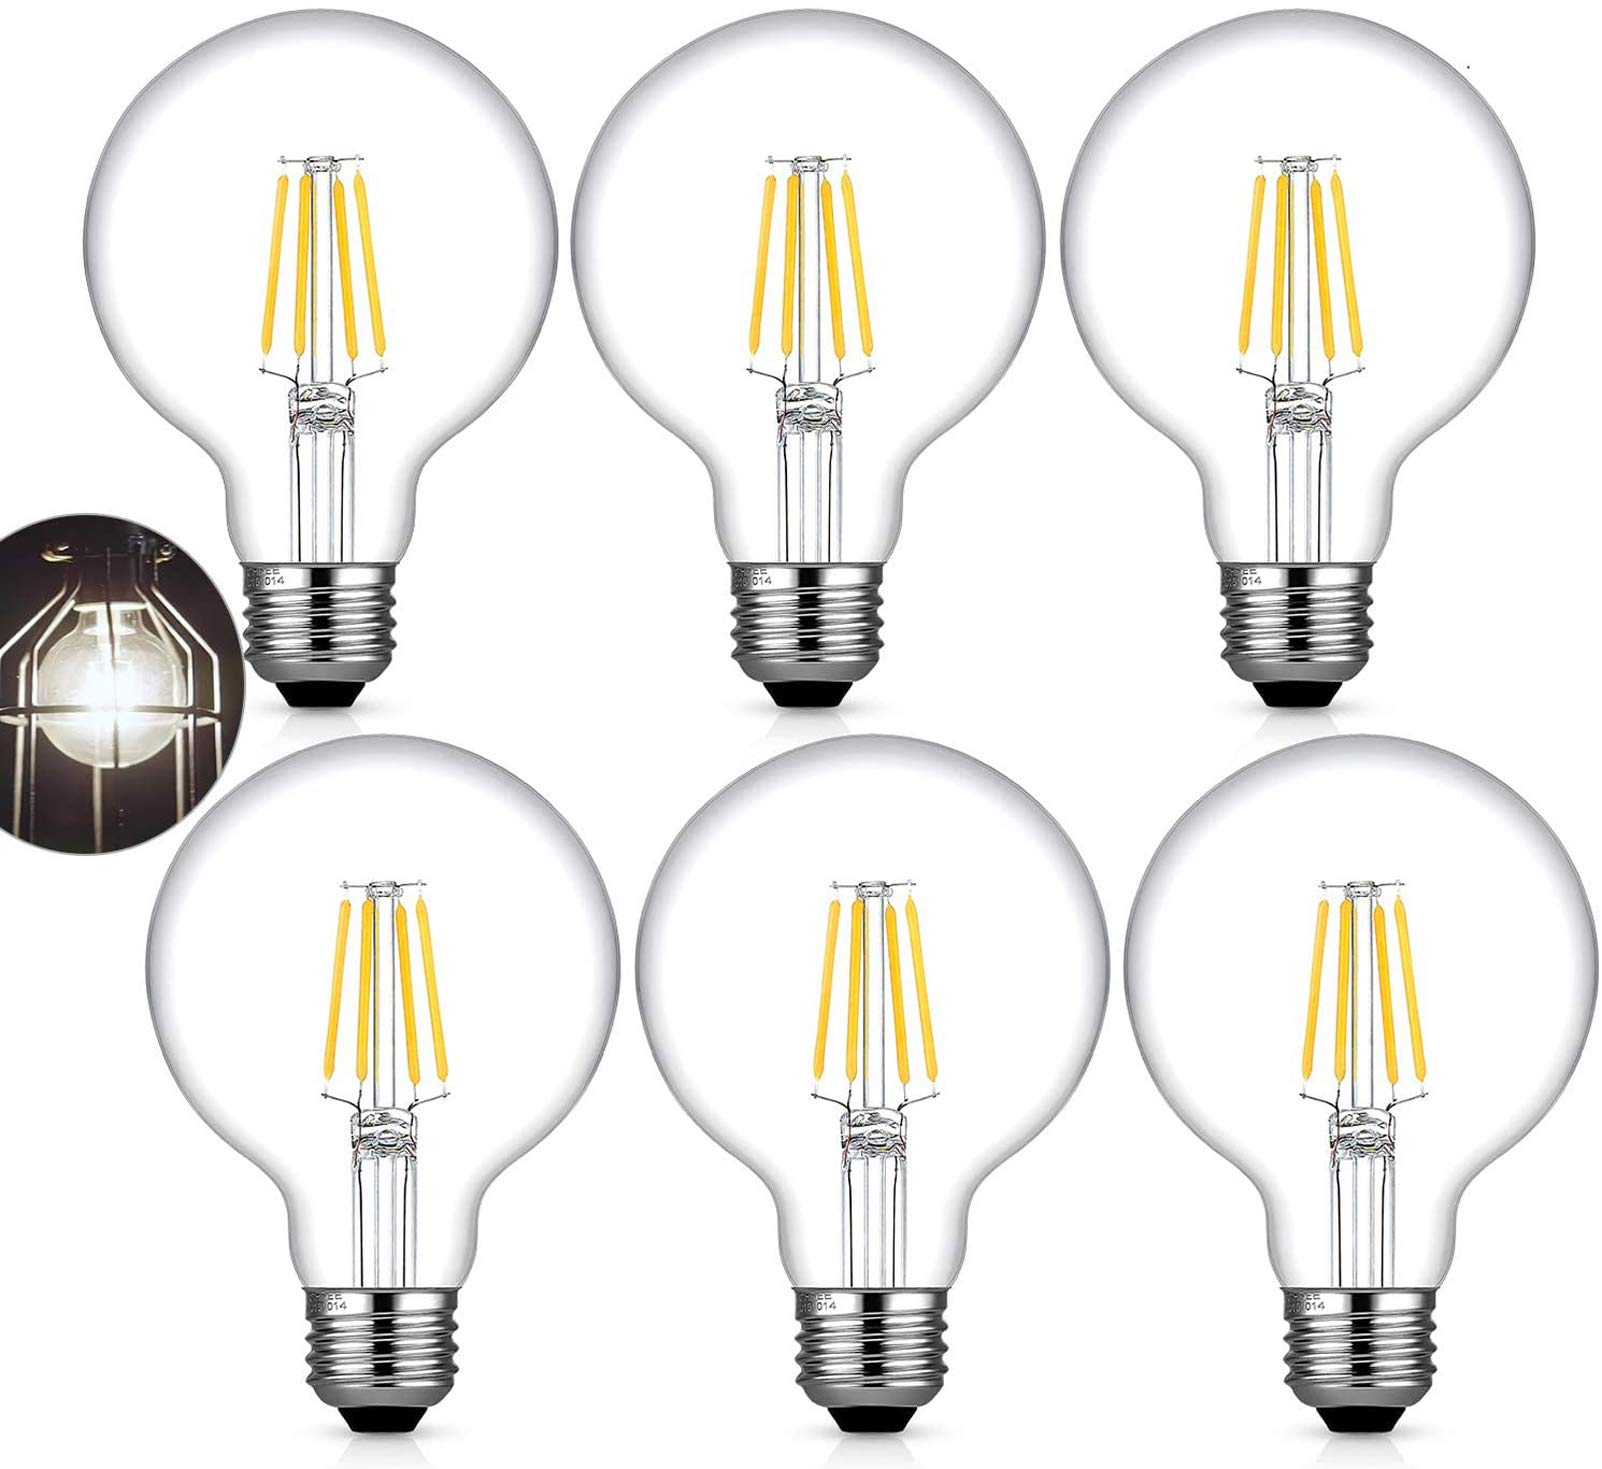 G25 Edison Led Globe Light Bulb 40W Equivalent